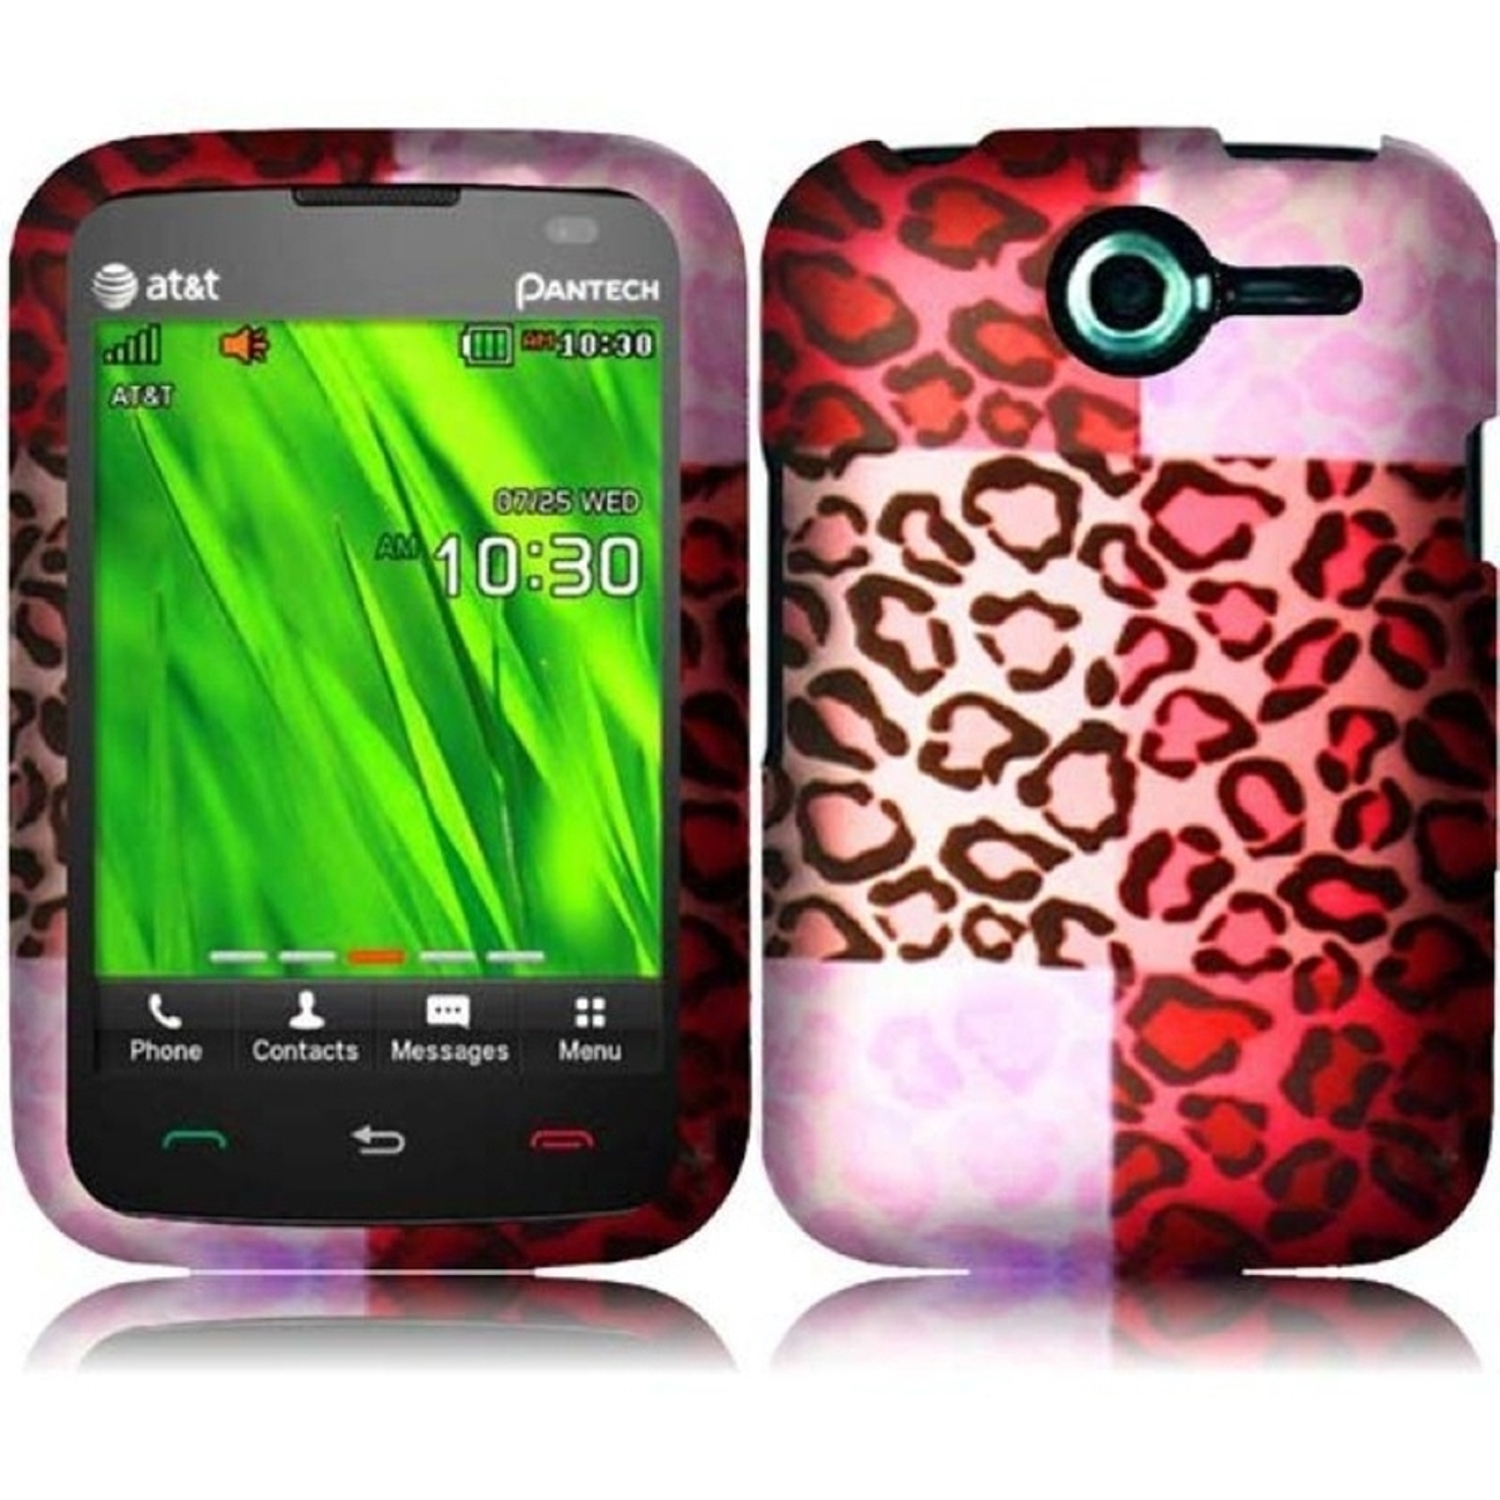 Insten For Pantech Renue P6030(AT&T) Rubberized Design Phone Hard Case Exotic Cheetah